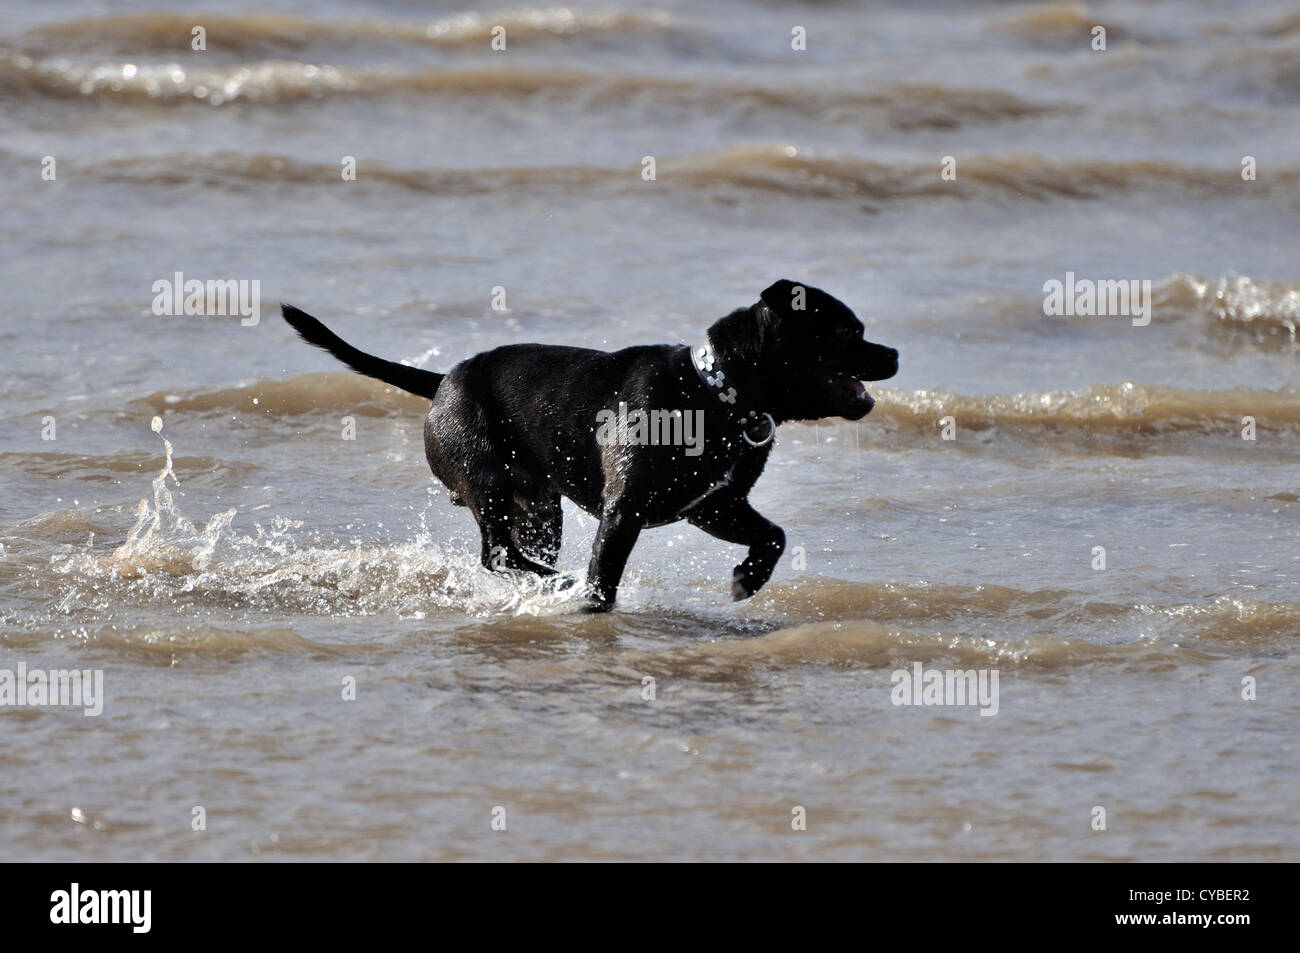 Black Staffordshire Bull Terrier running in sea at waters edge - Stock Image